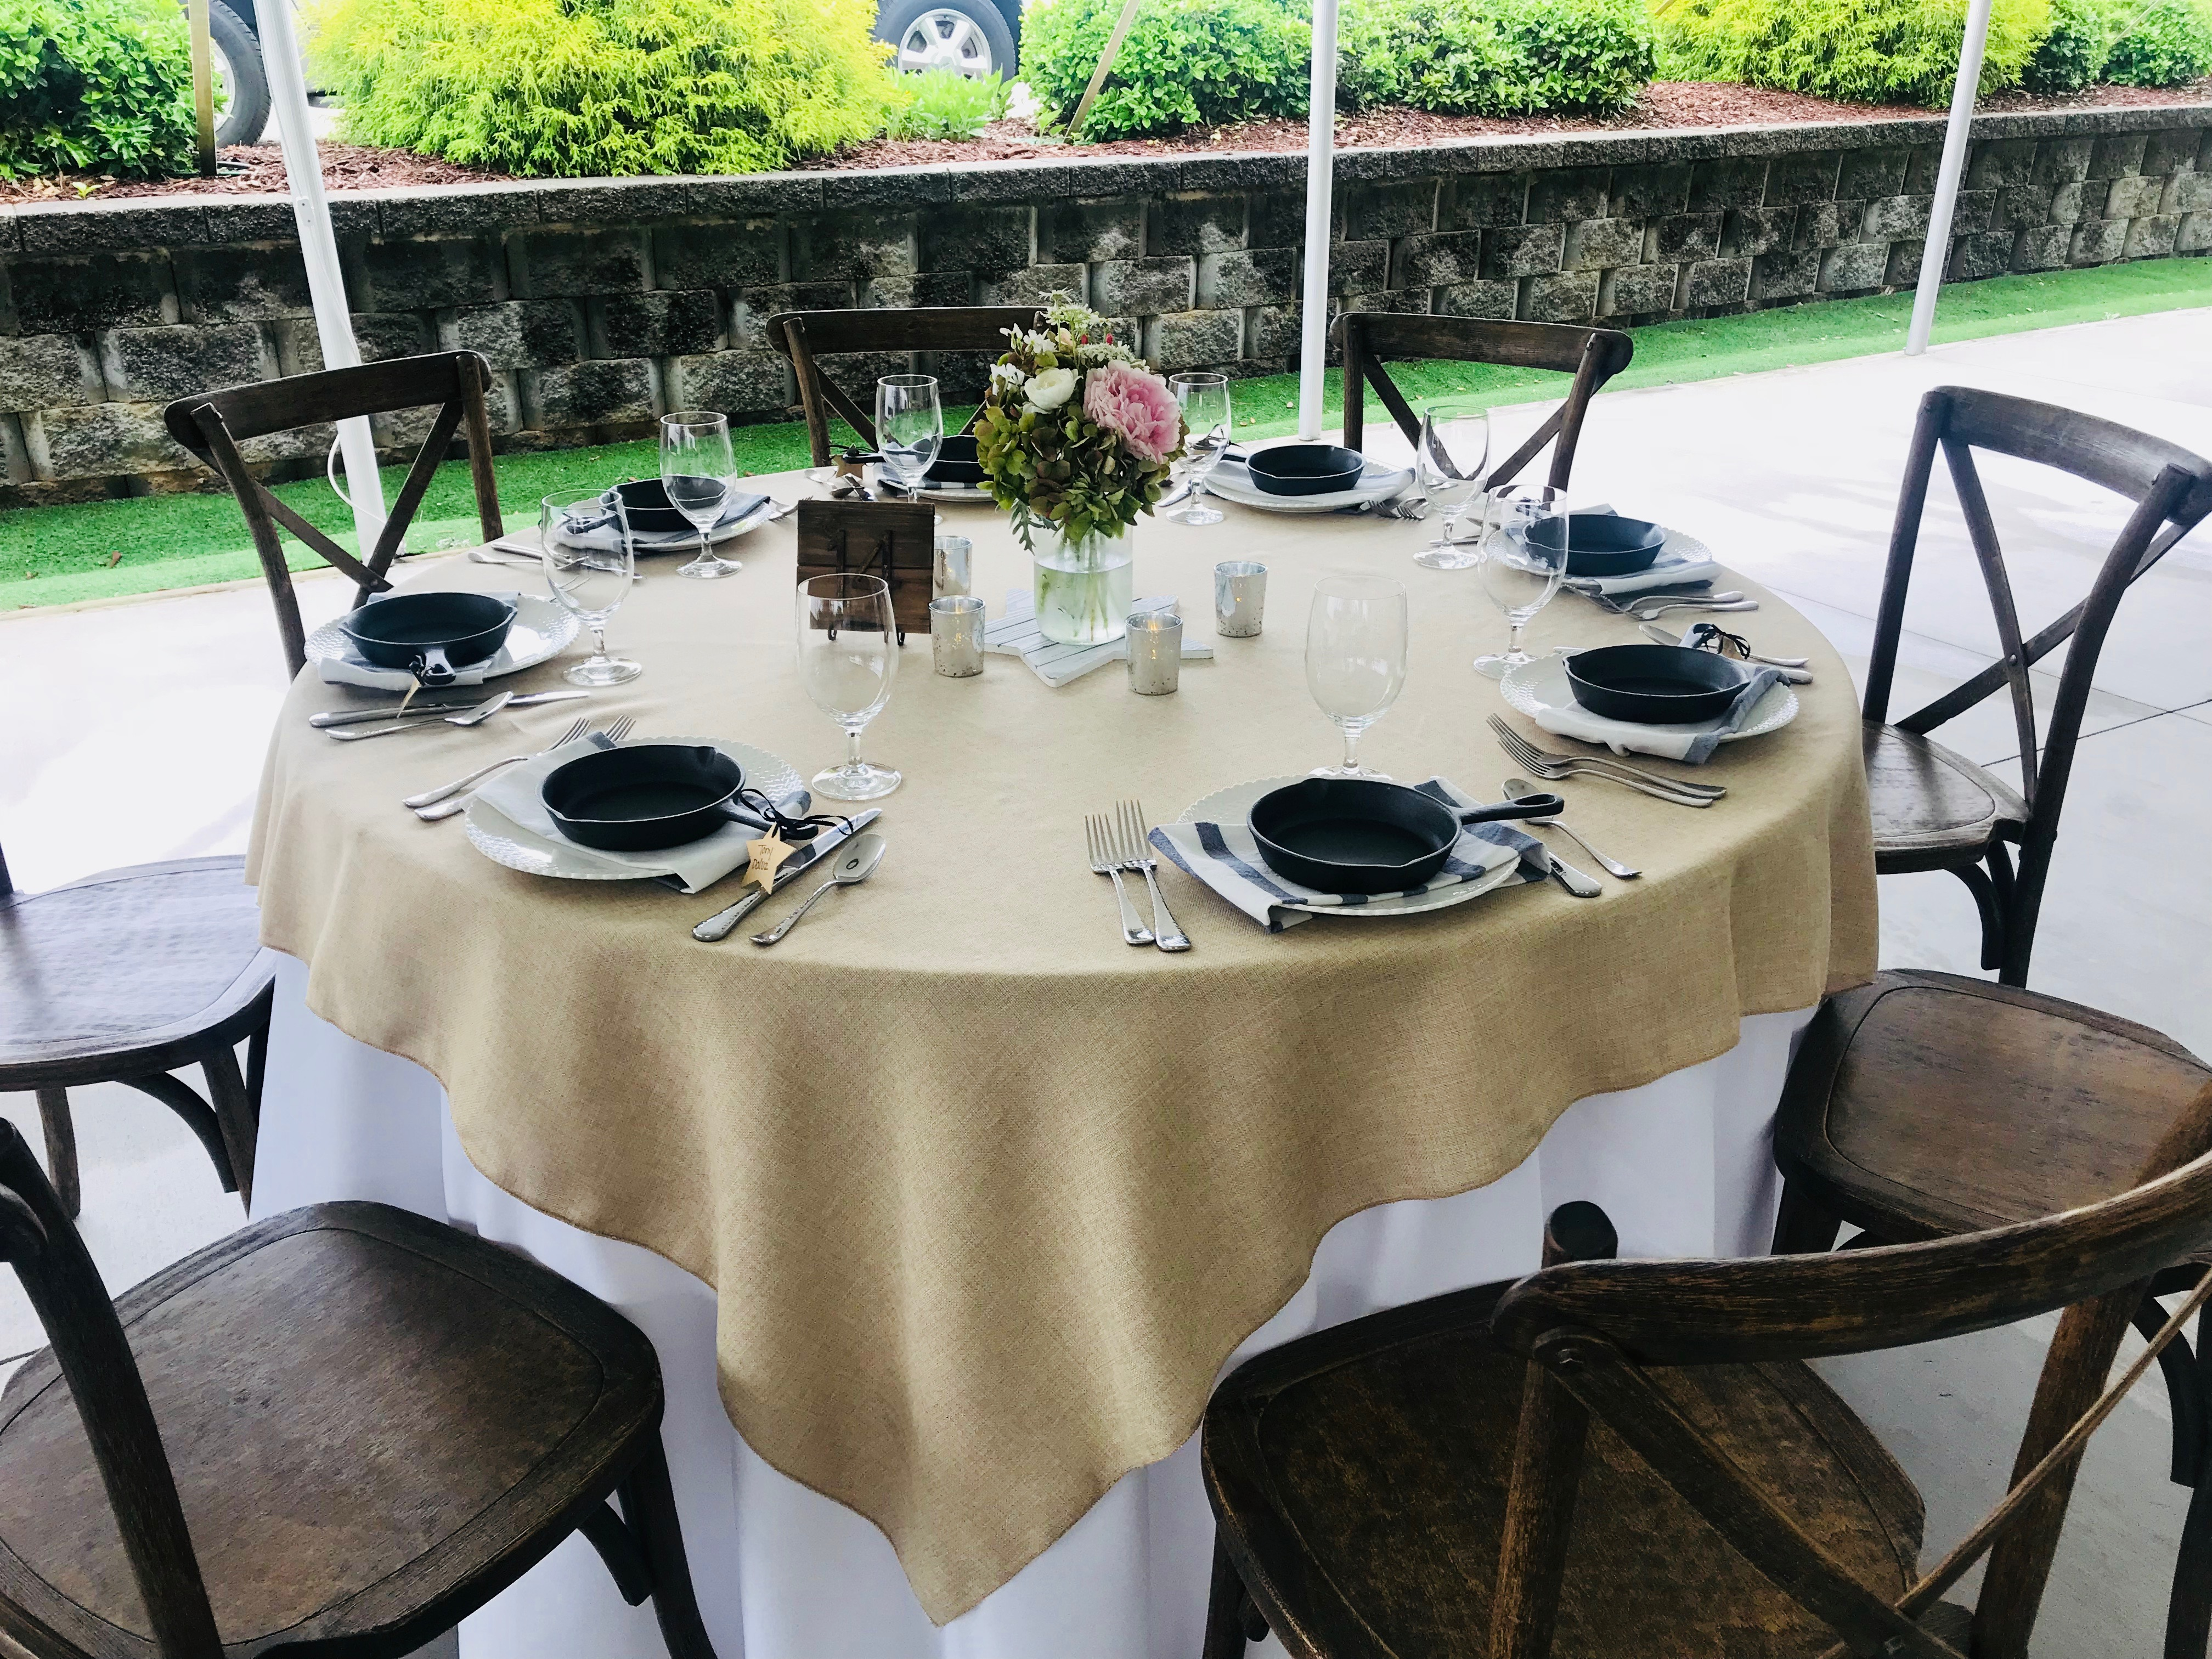 19, 72 Inch By 72 Inch Faux Burlap Tablecloths.  Excellent Condition.